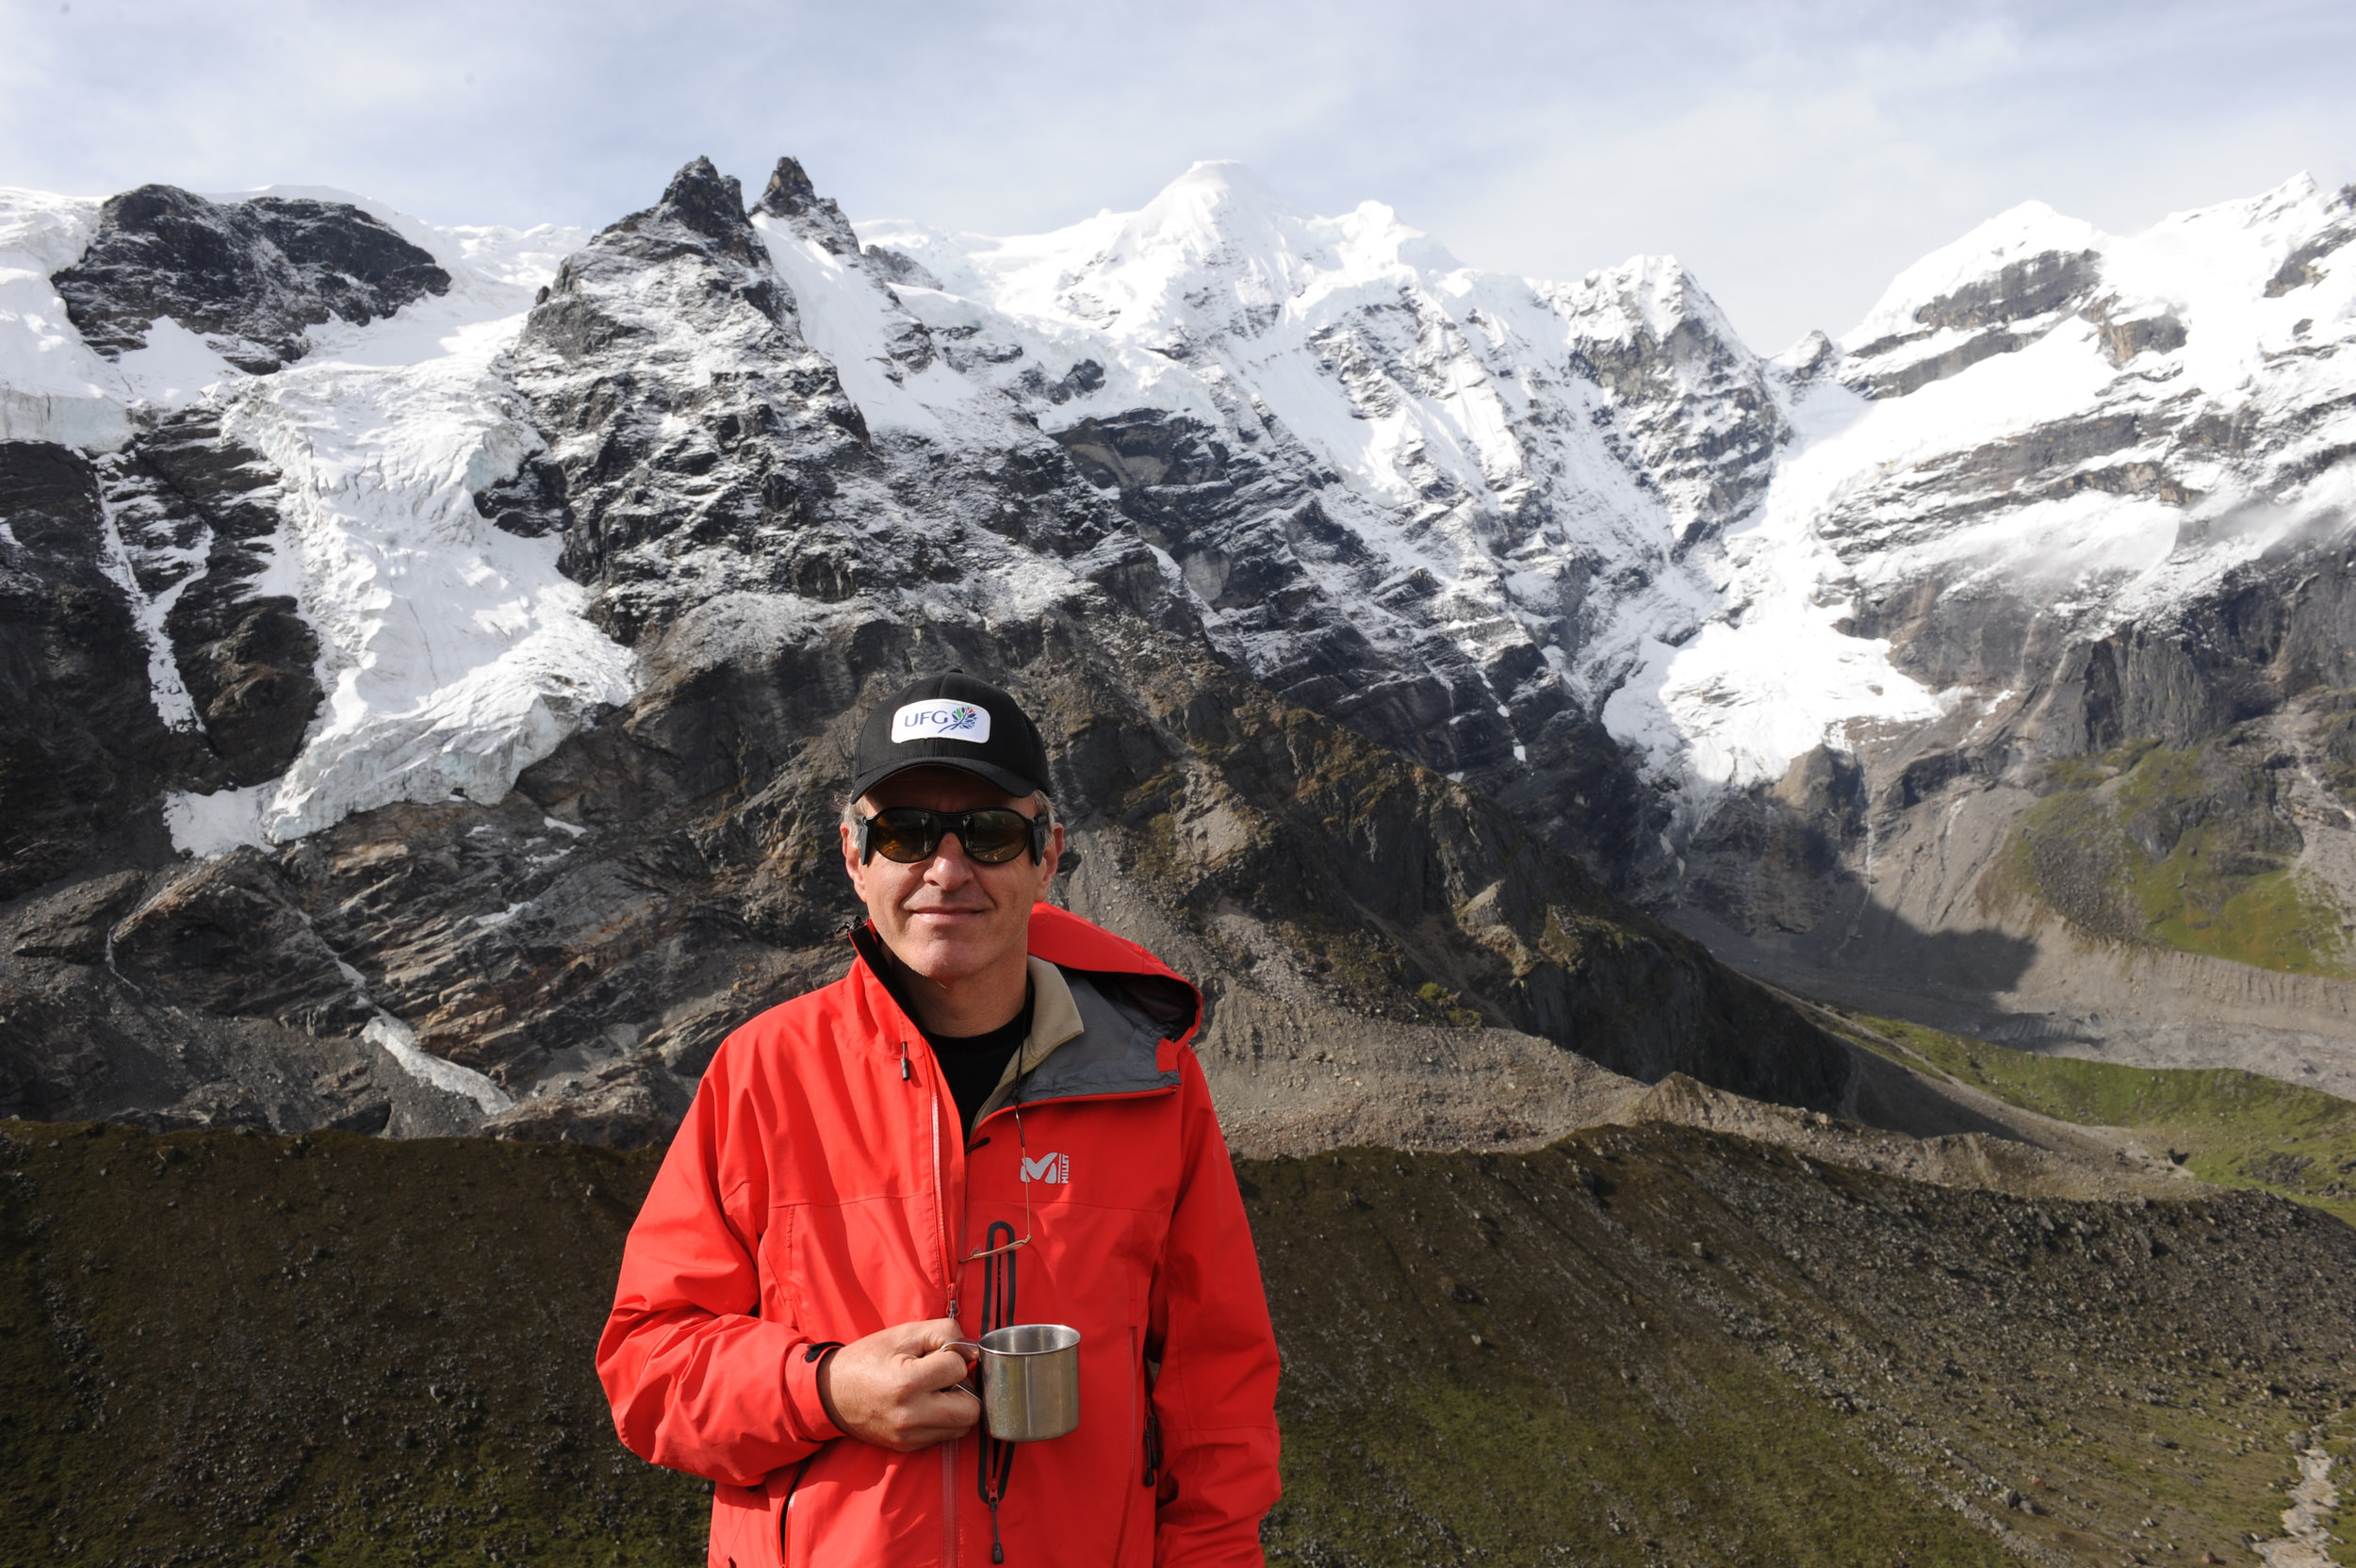 Christophe with Mera Peak in the background.